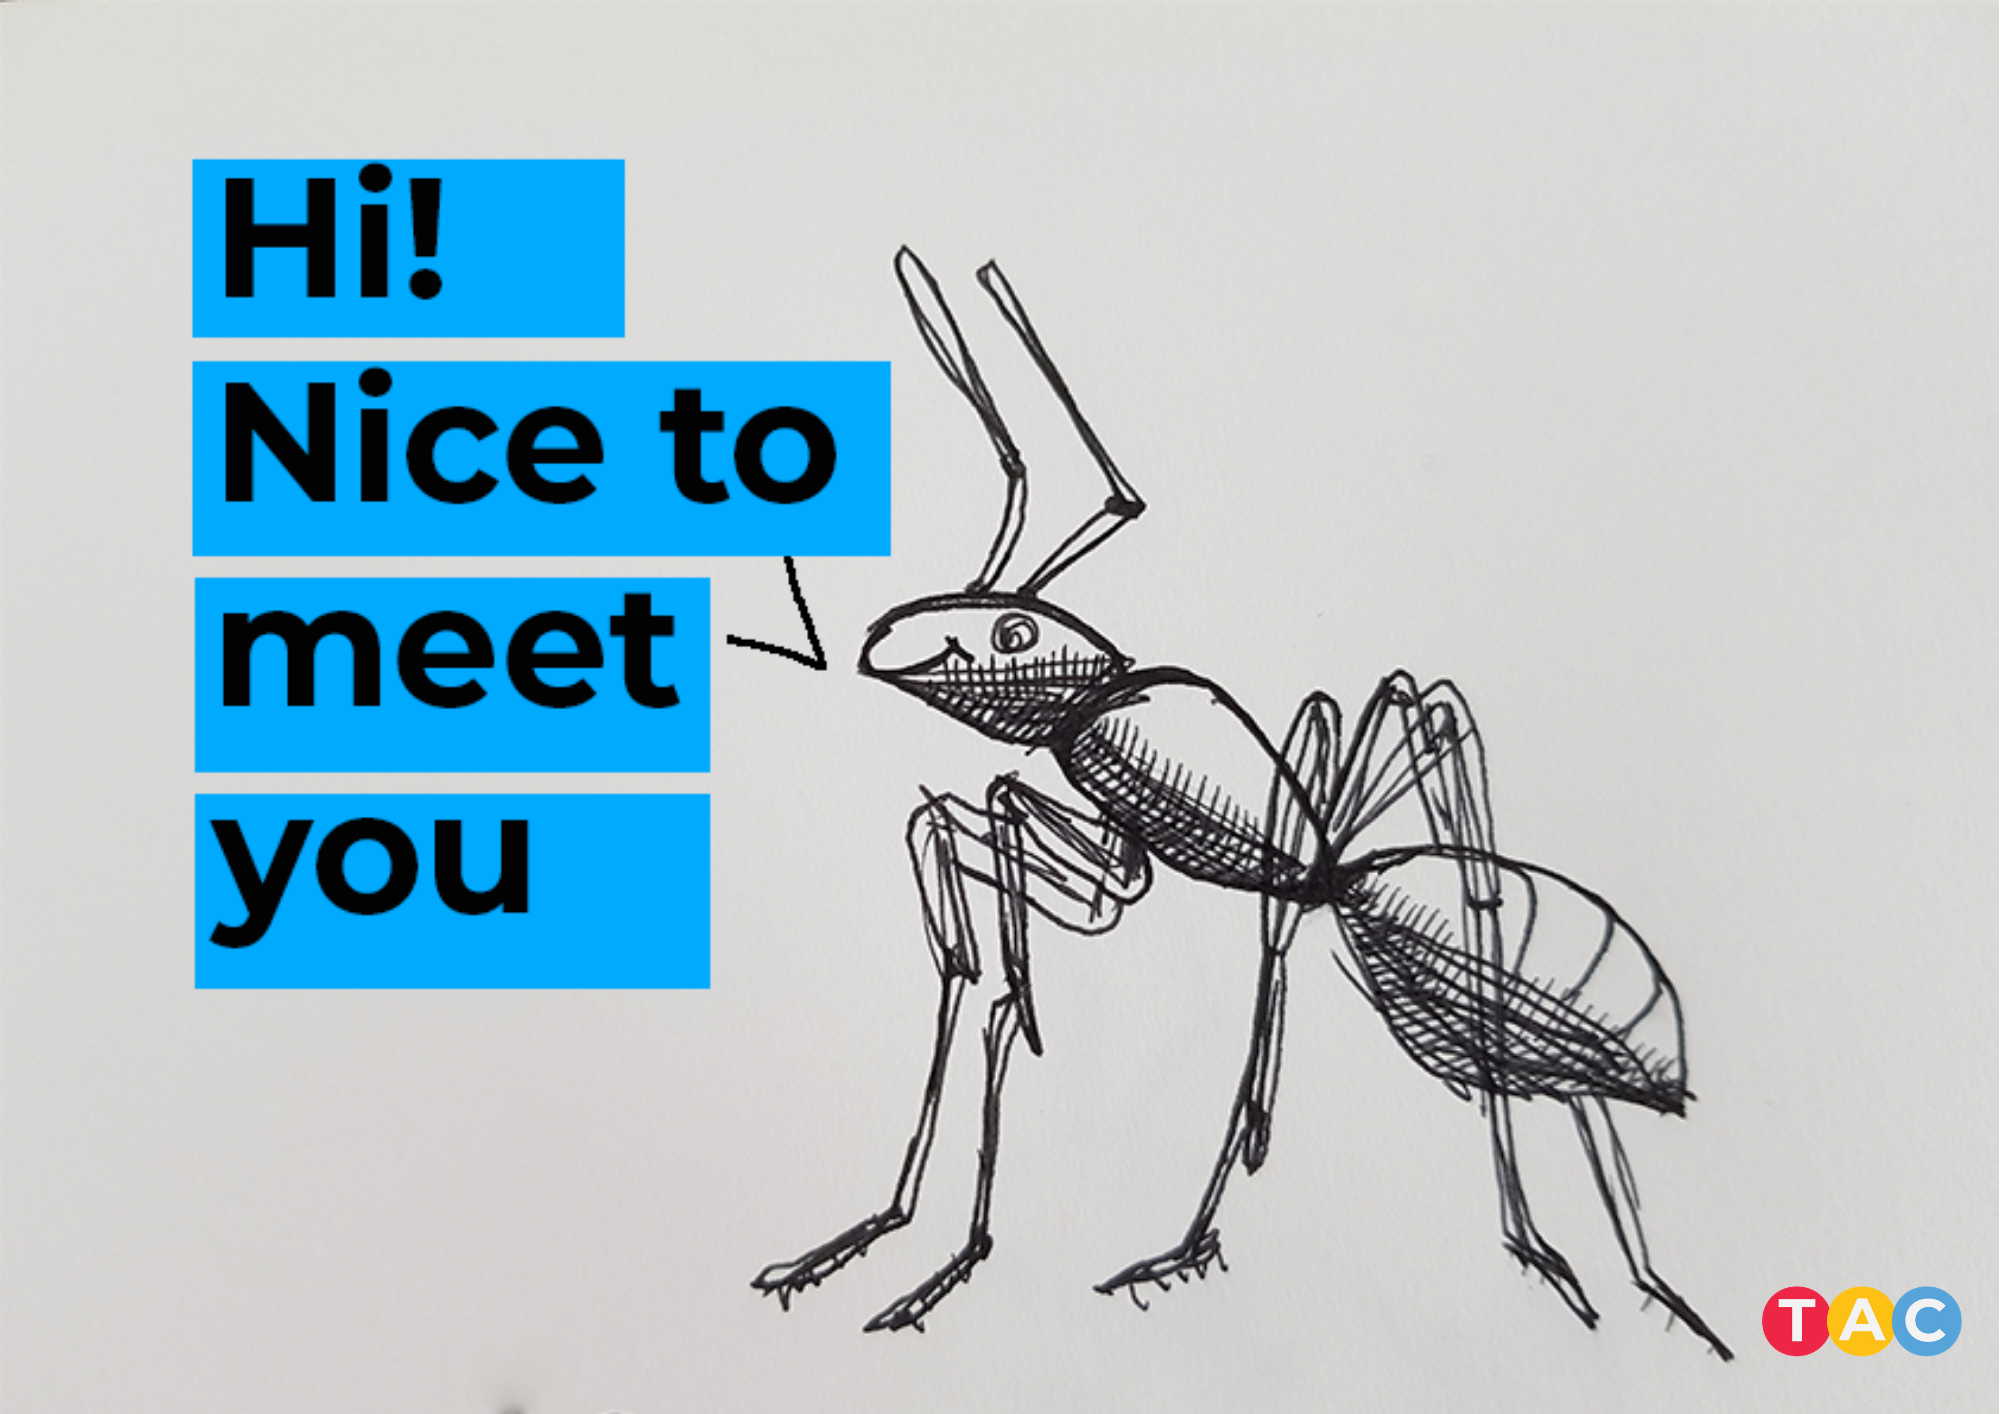 What do both content and ants have in common?